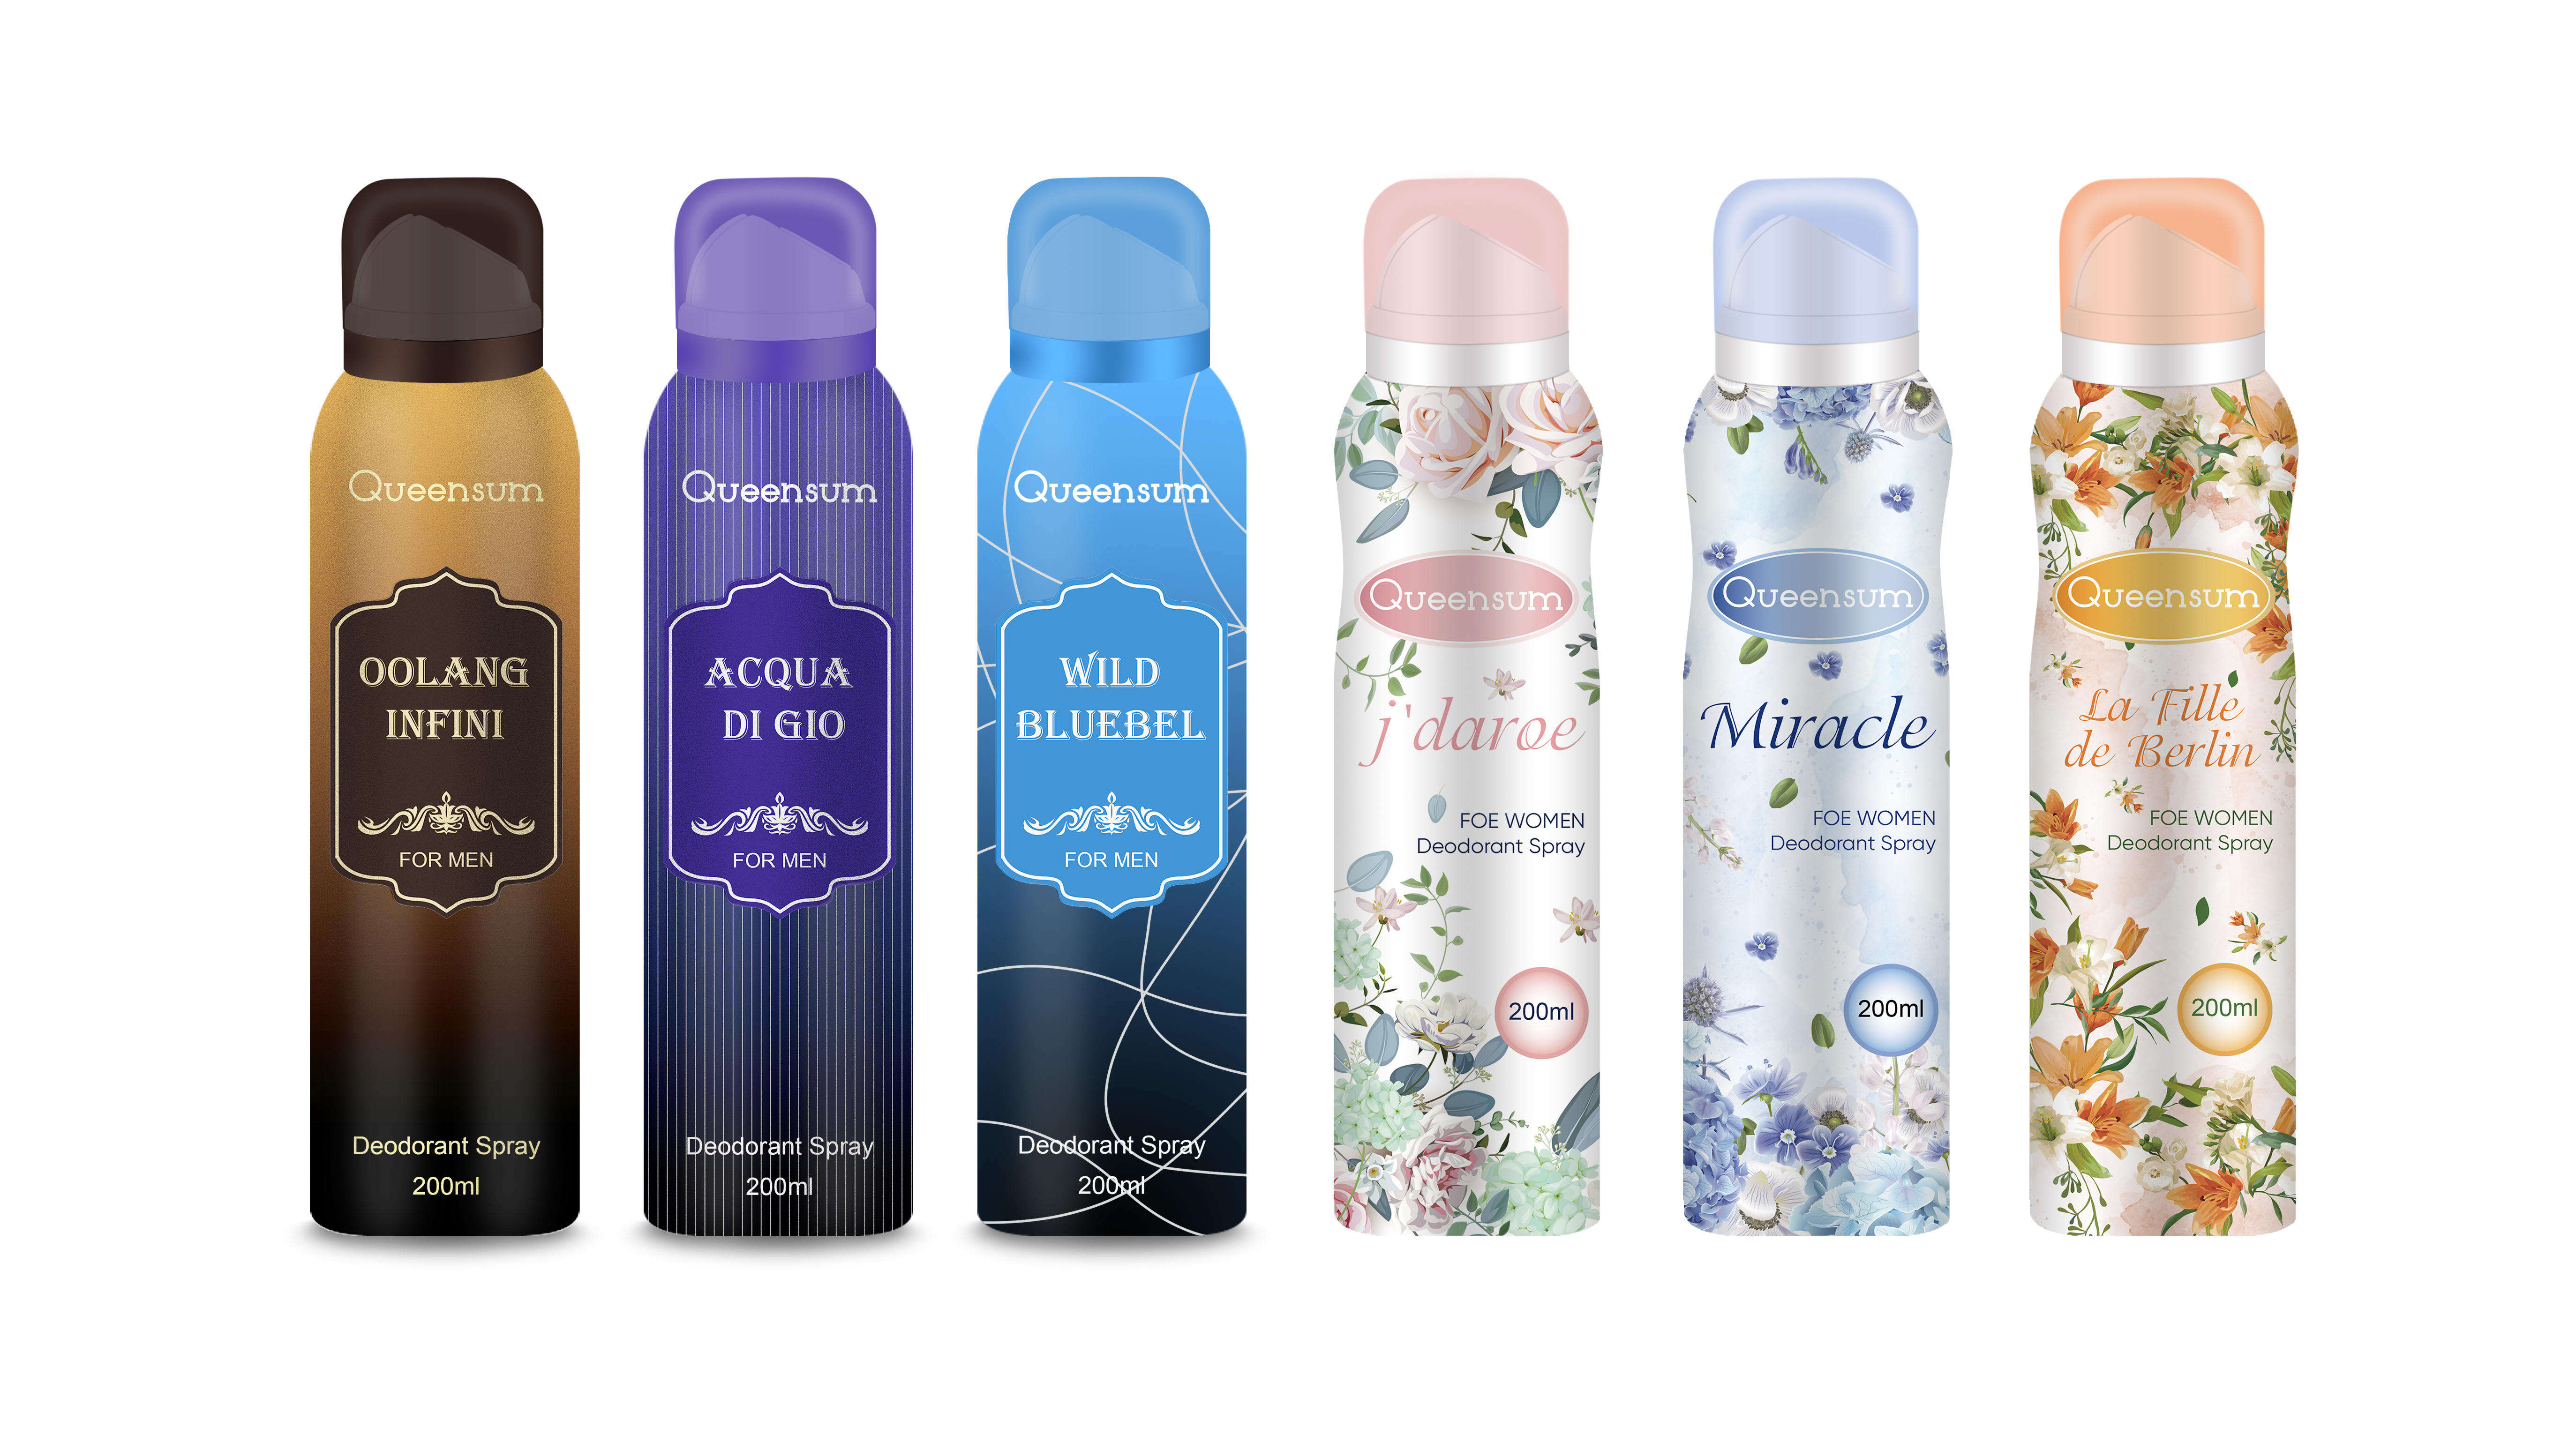 Deodorant Spray Hot Selling Long Lasting Fragrance Body Mist Healthy And Harmless Deodorant Body Spray For Women